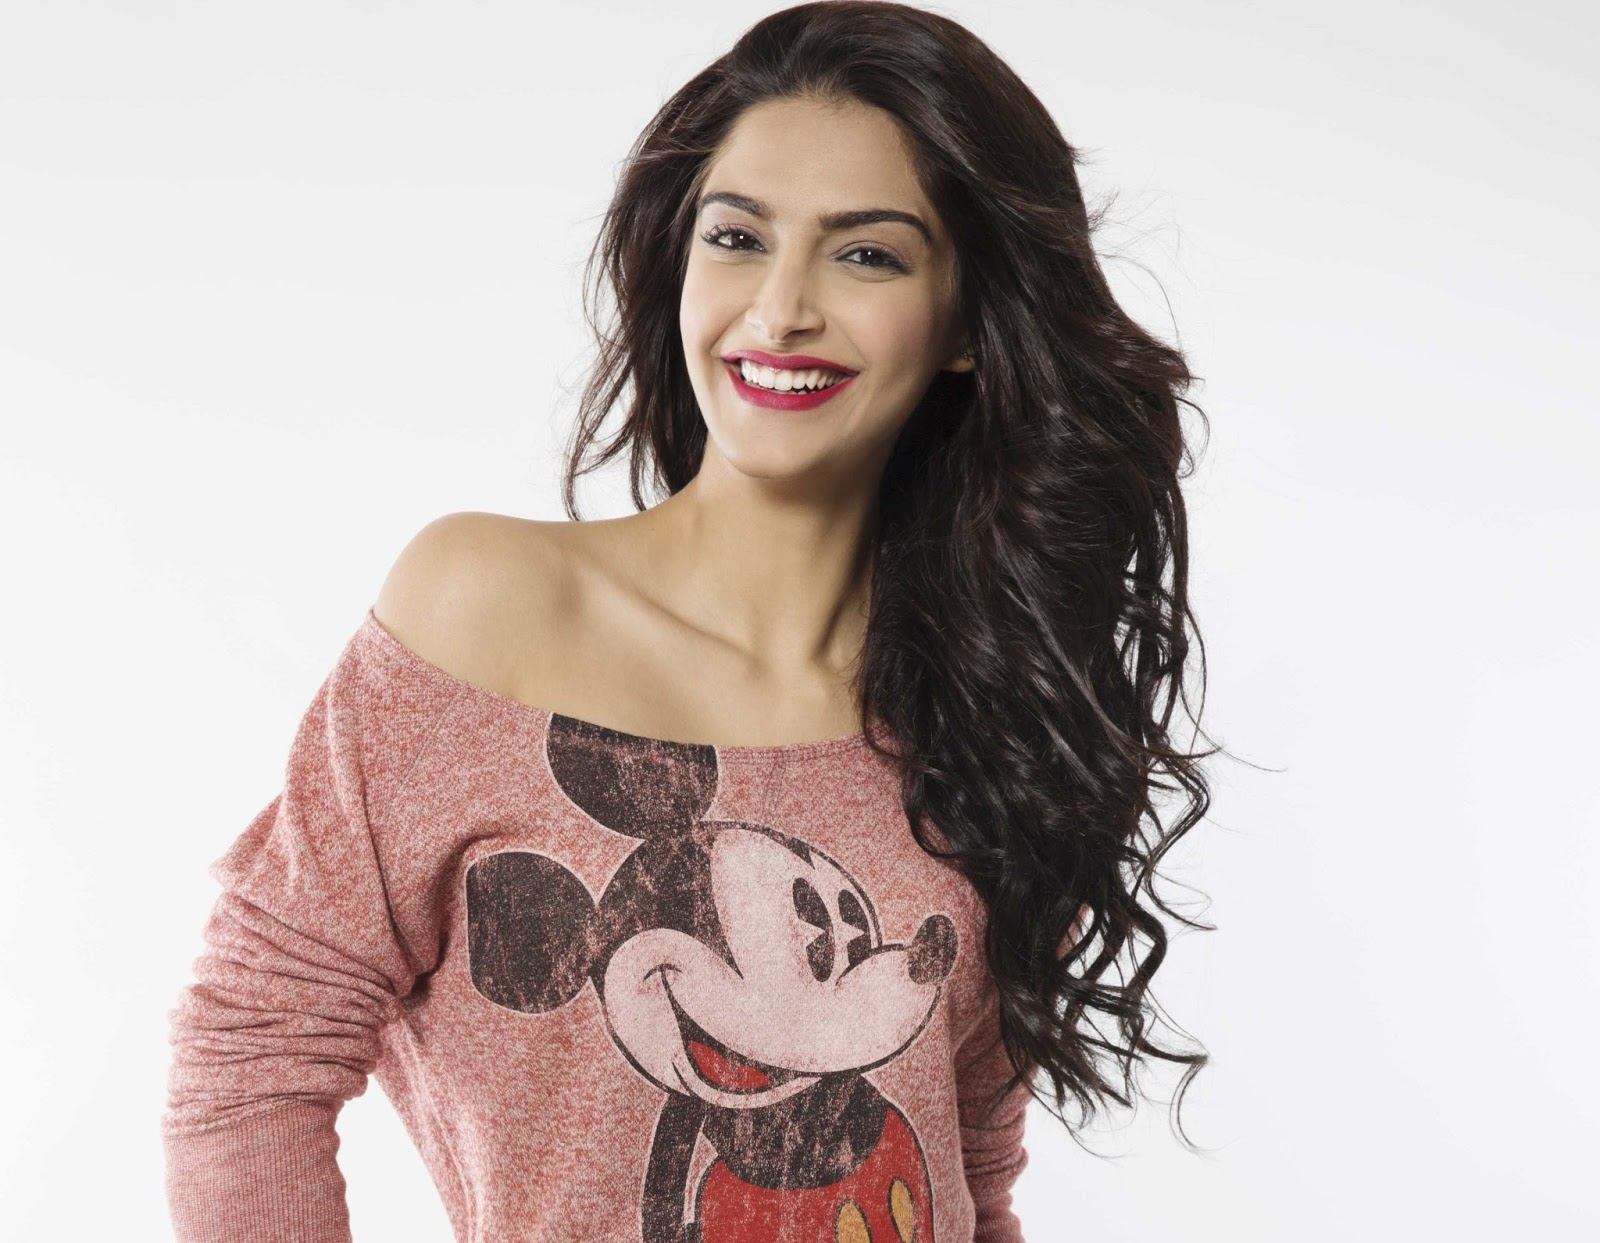 actress celebrities photos: sonam kapoor 11 smiling photos